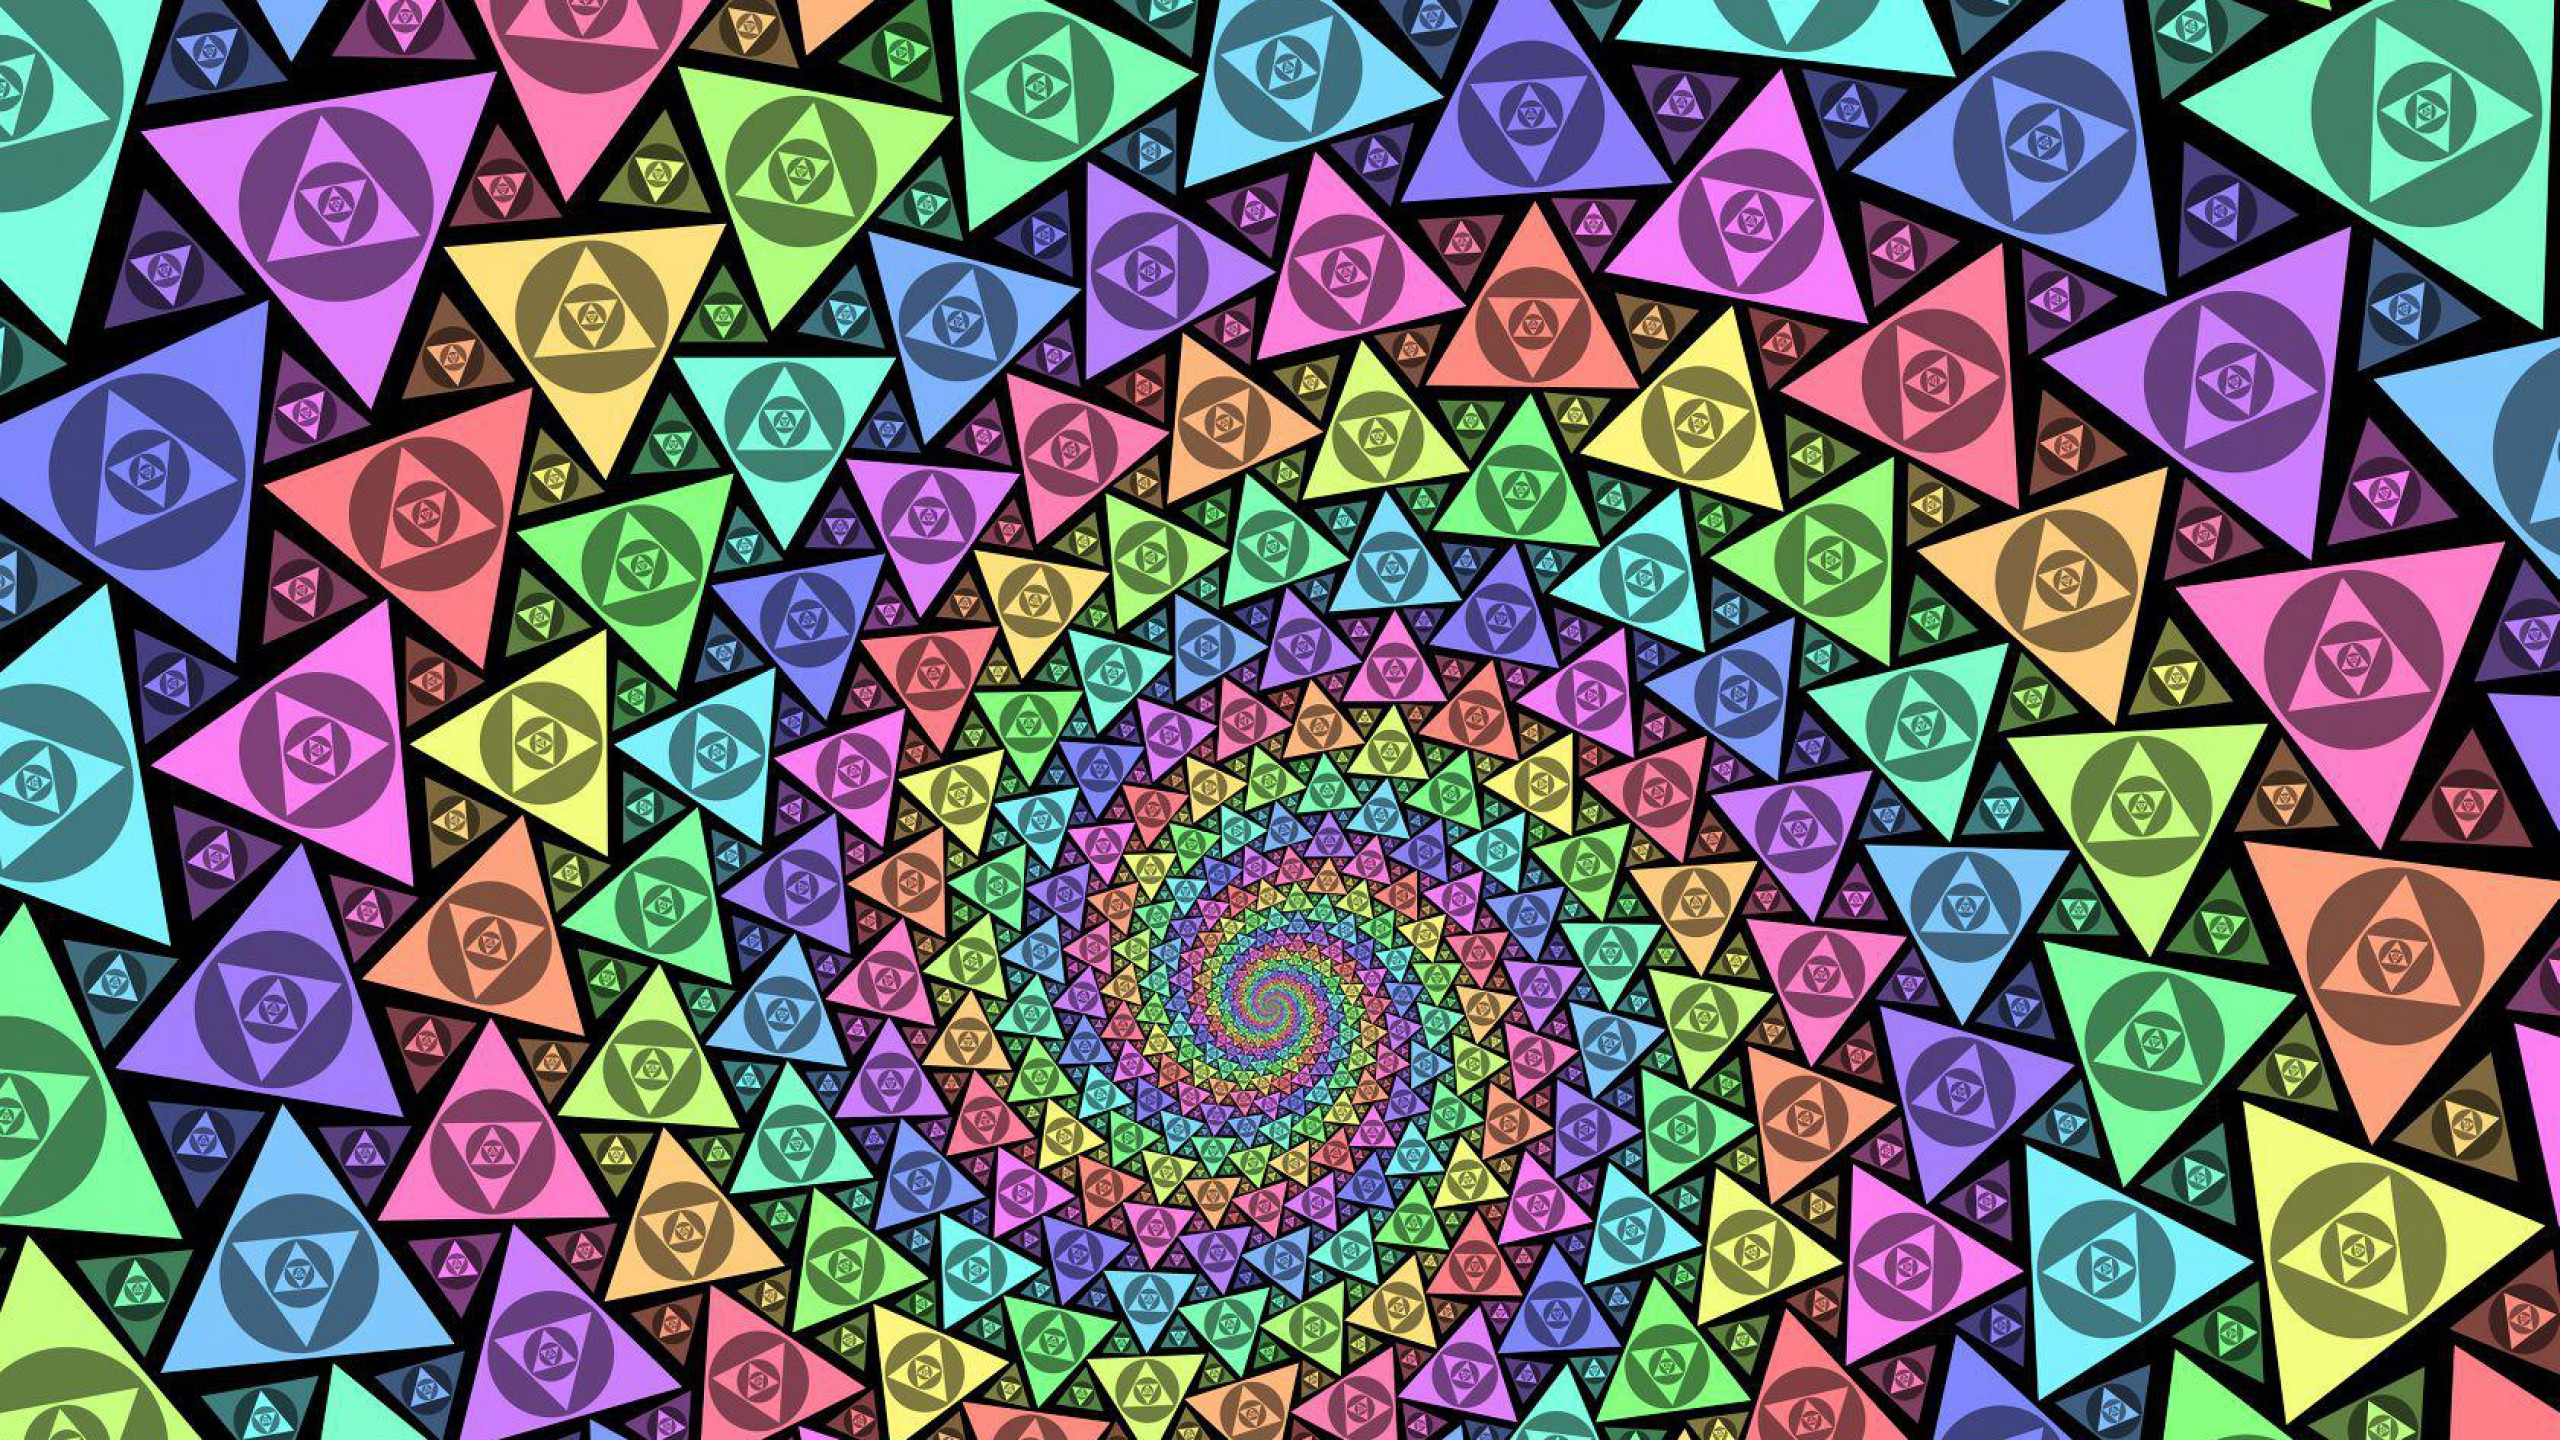 Trippy Wallpaper   HD Wallpapers 2560x1440